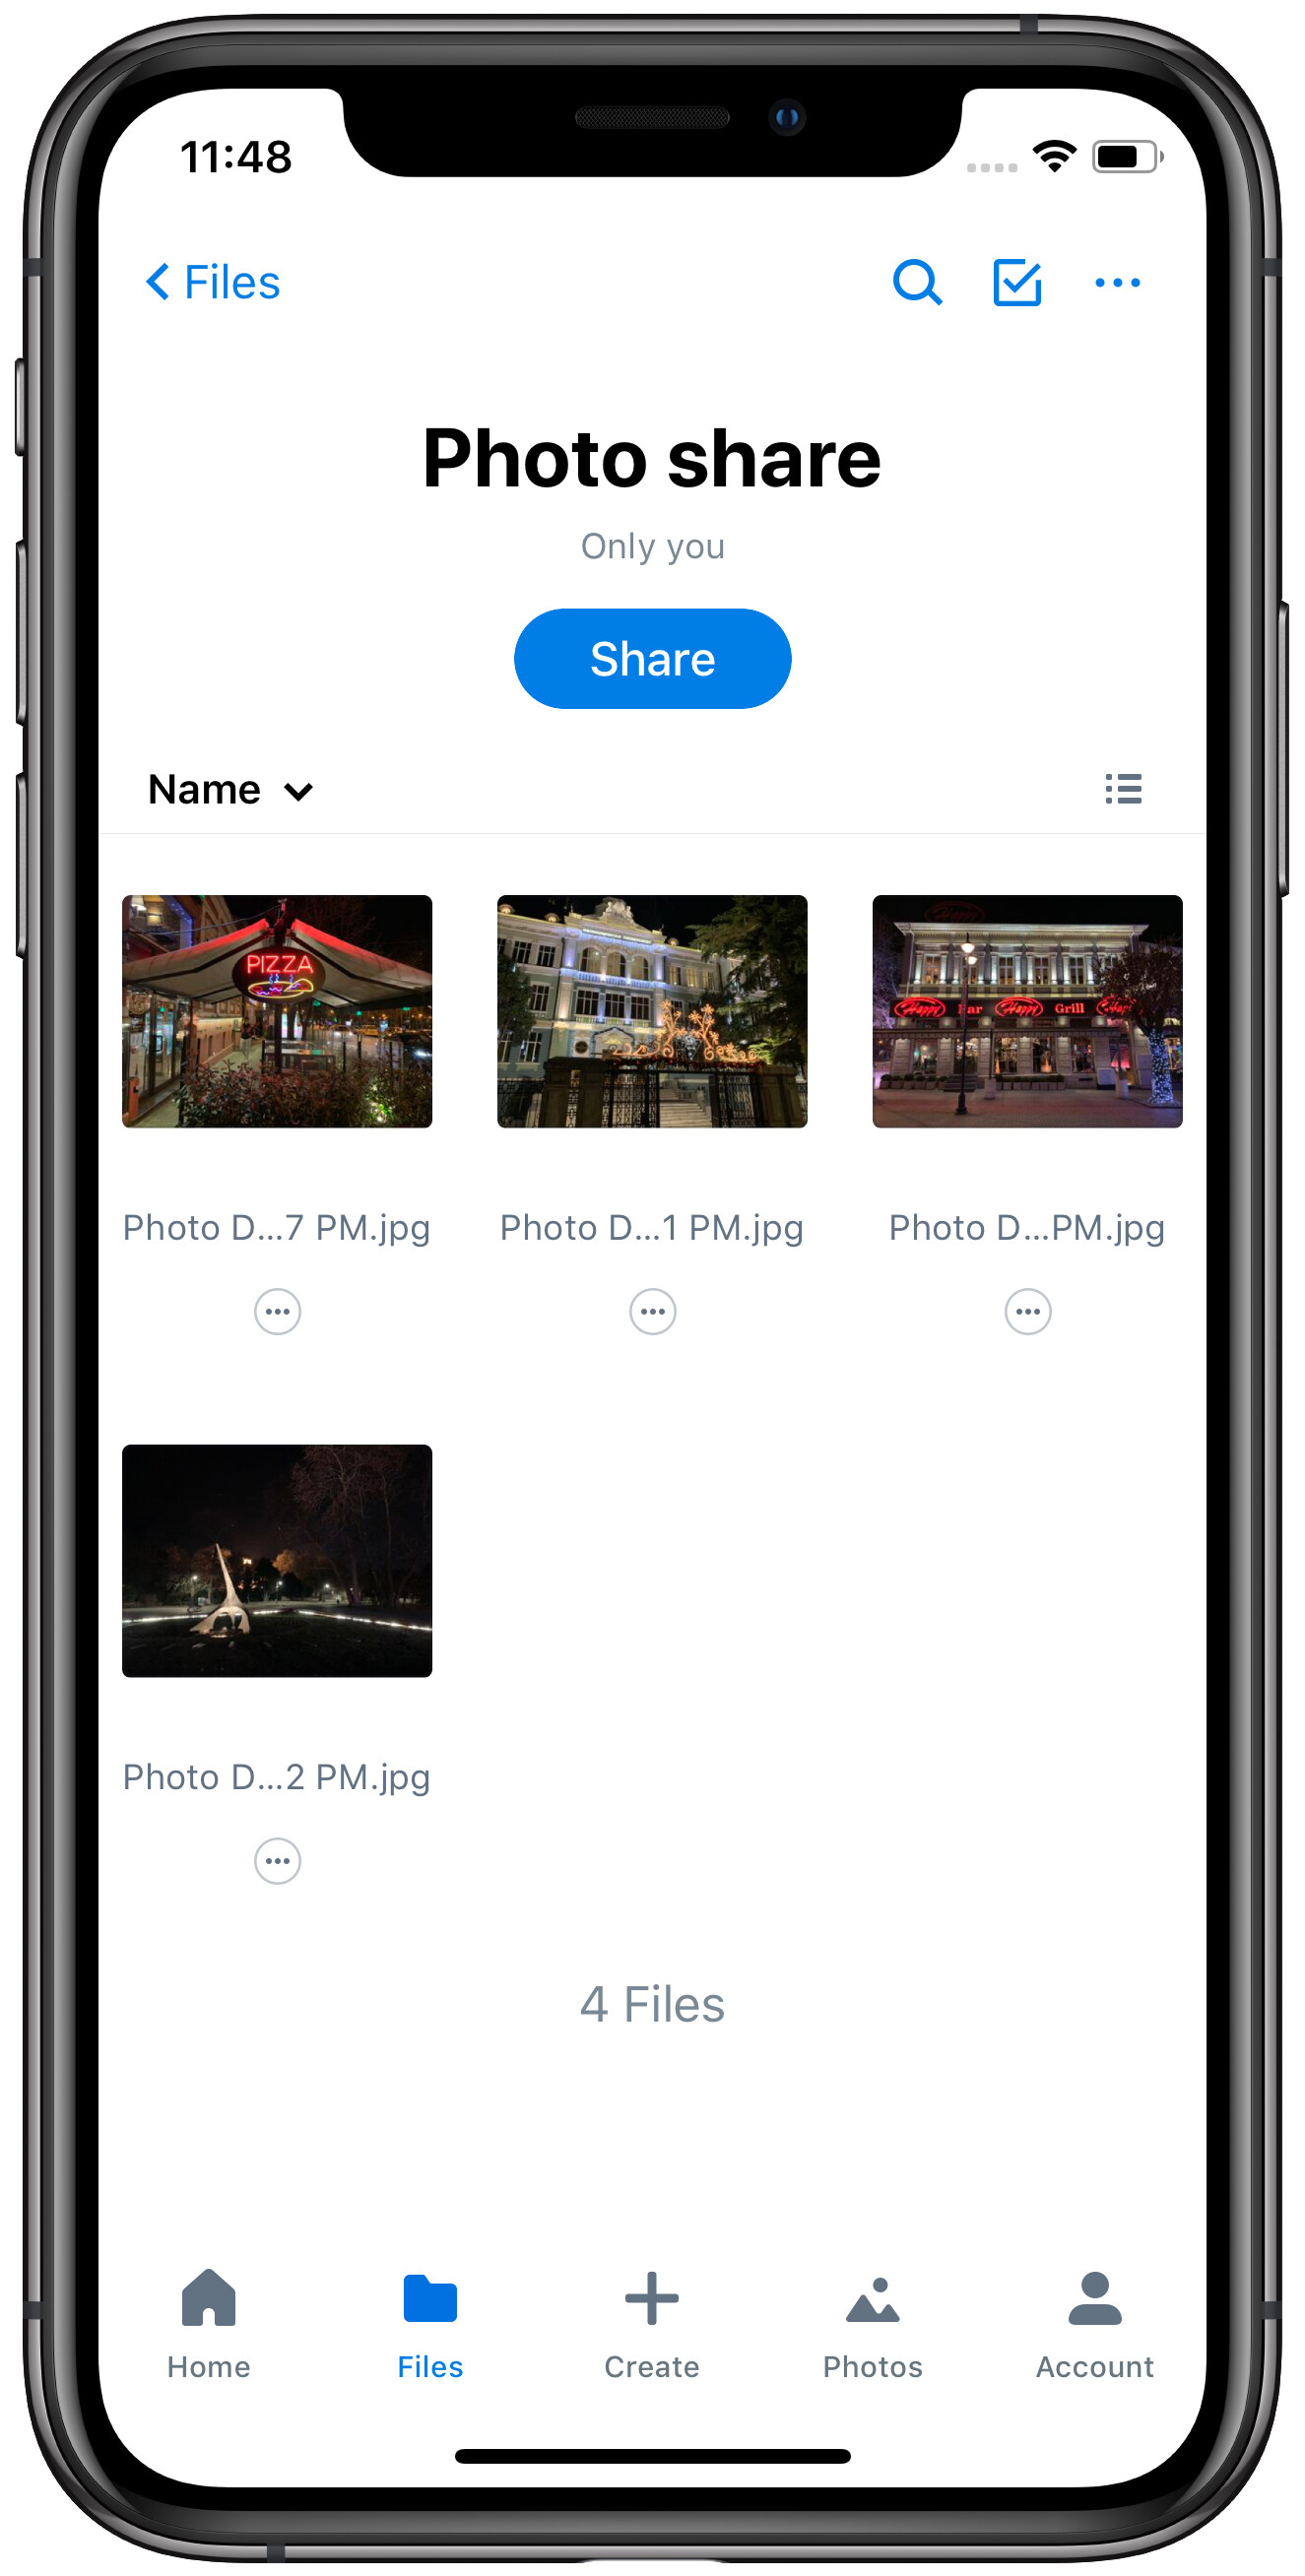 How to send photos and videos from an iPhone to an Android